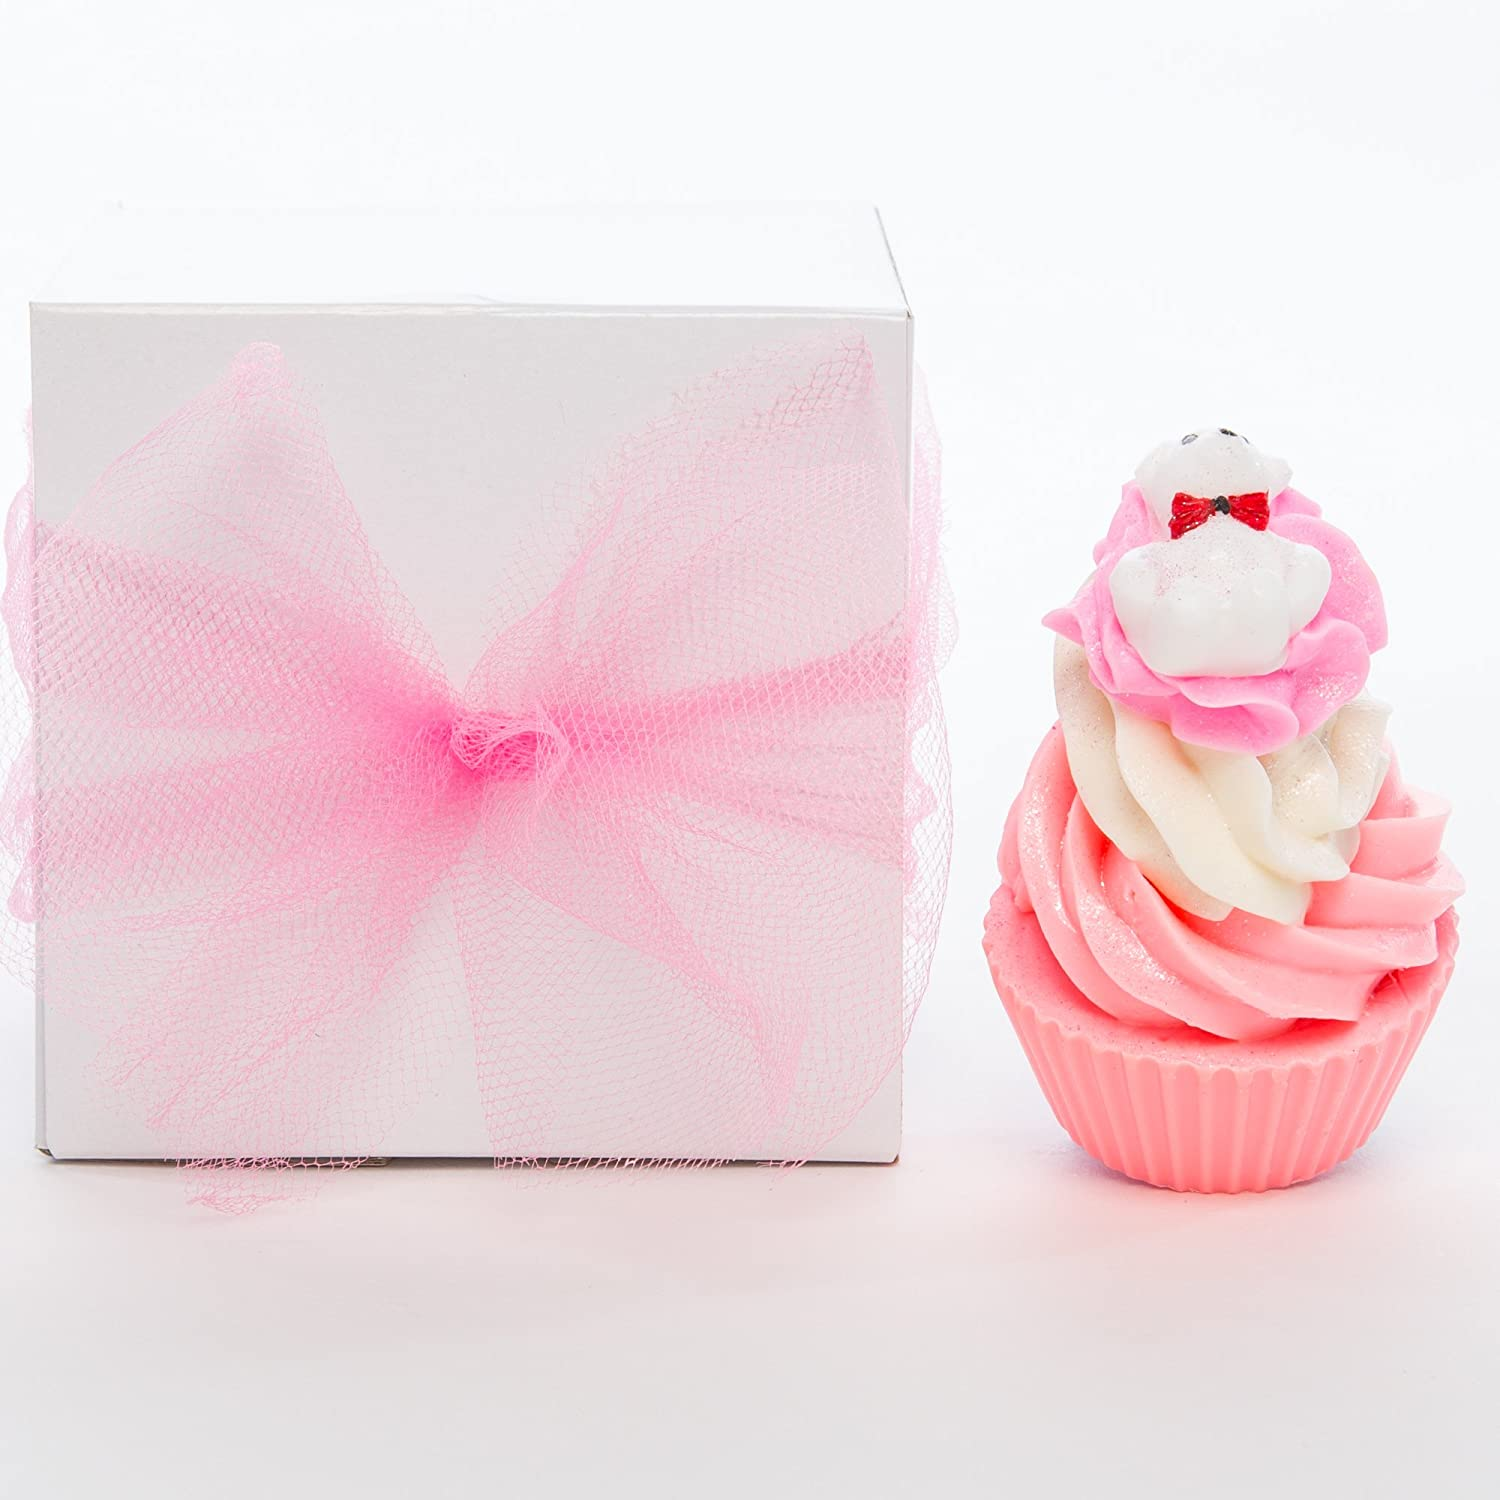 Amazon.com : Handmade Soap Cupcake Gift Sets -Perfect Gifts For ...